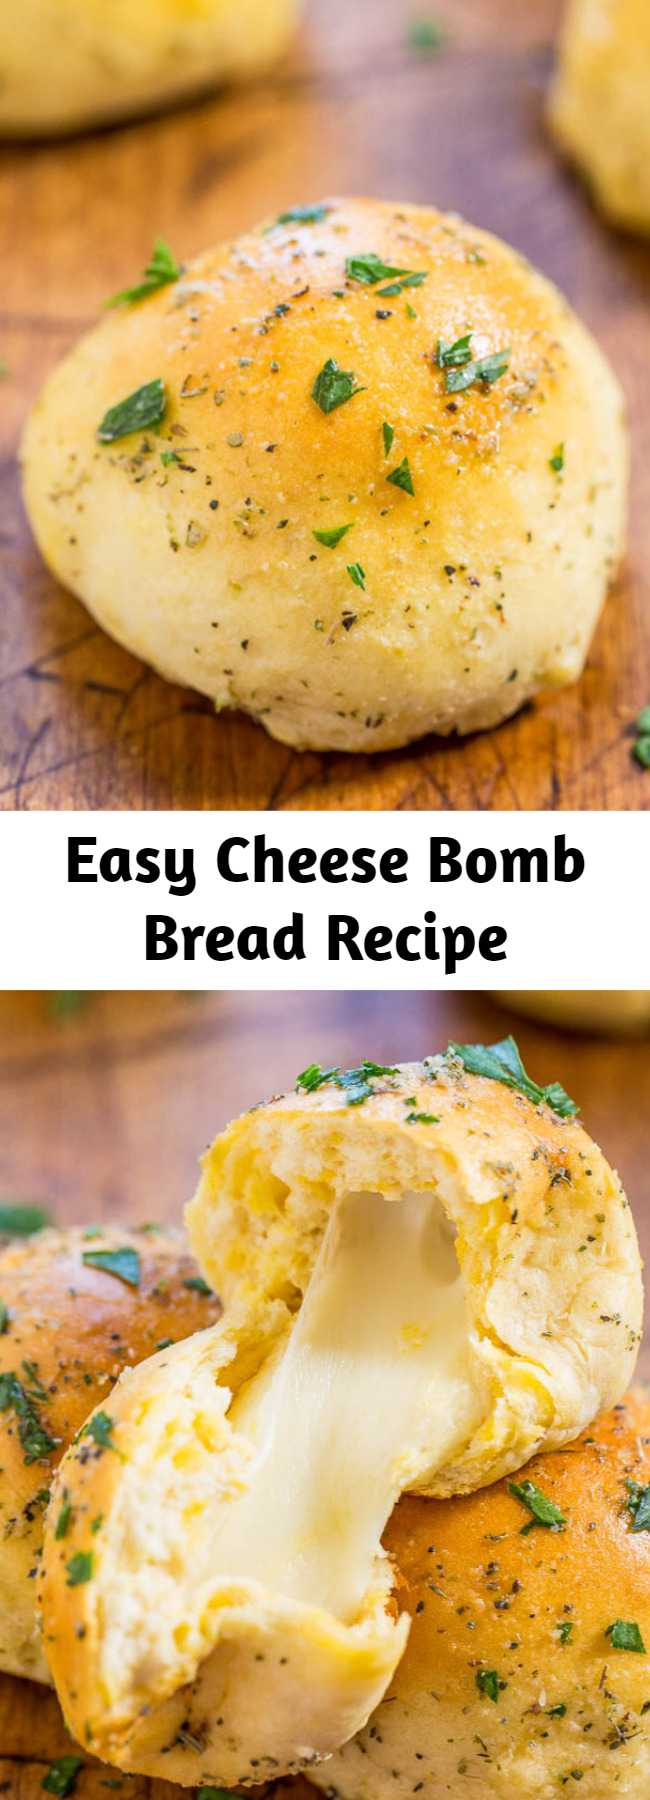 Easy Cheese Bomb Bread Recipe - Soft, buttery bread brushed with garlic butter and stuffed with CHEESE! So good, mindlessly easy, goofproof, and ready in 10 minutes! A hit with everyone!!